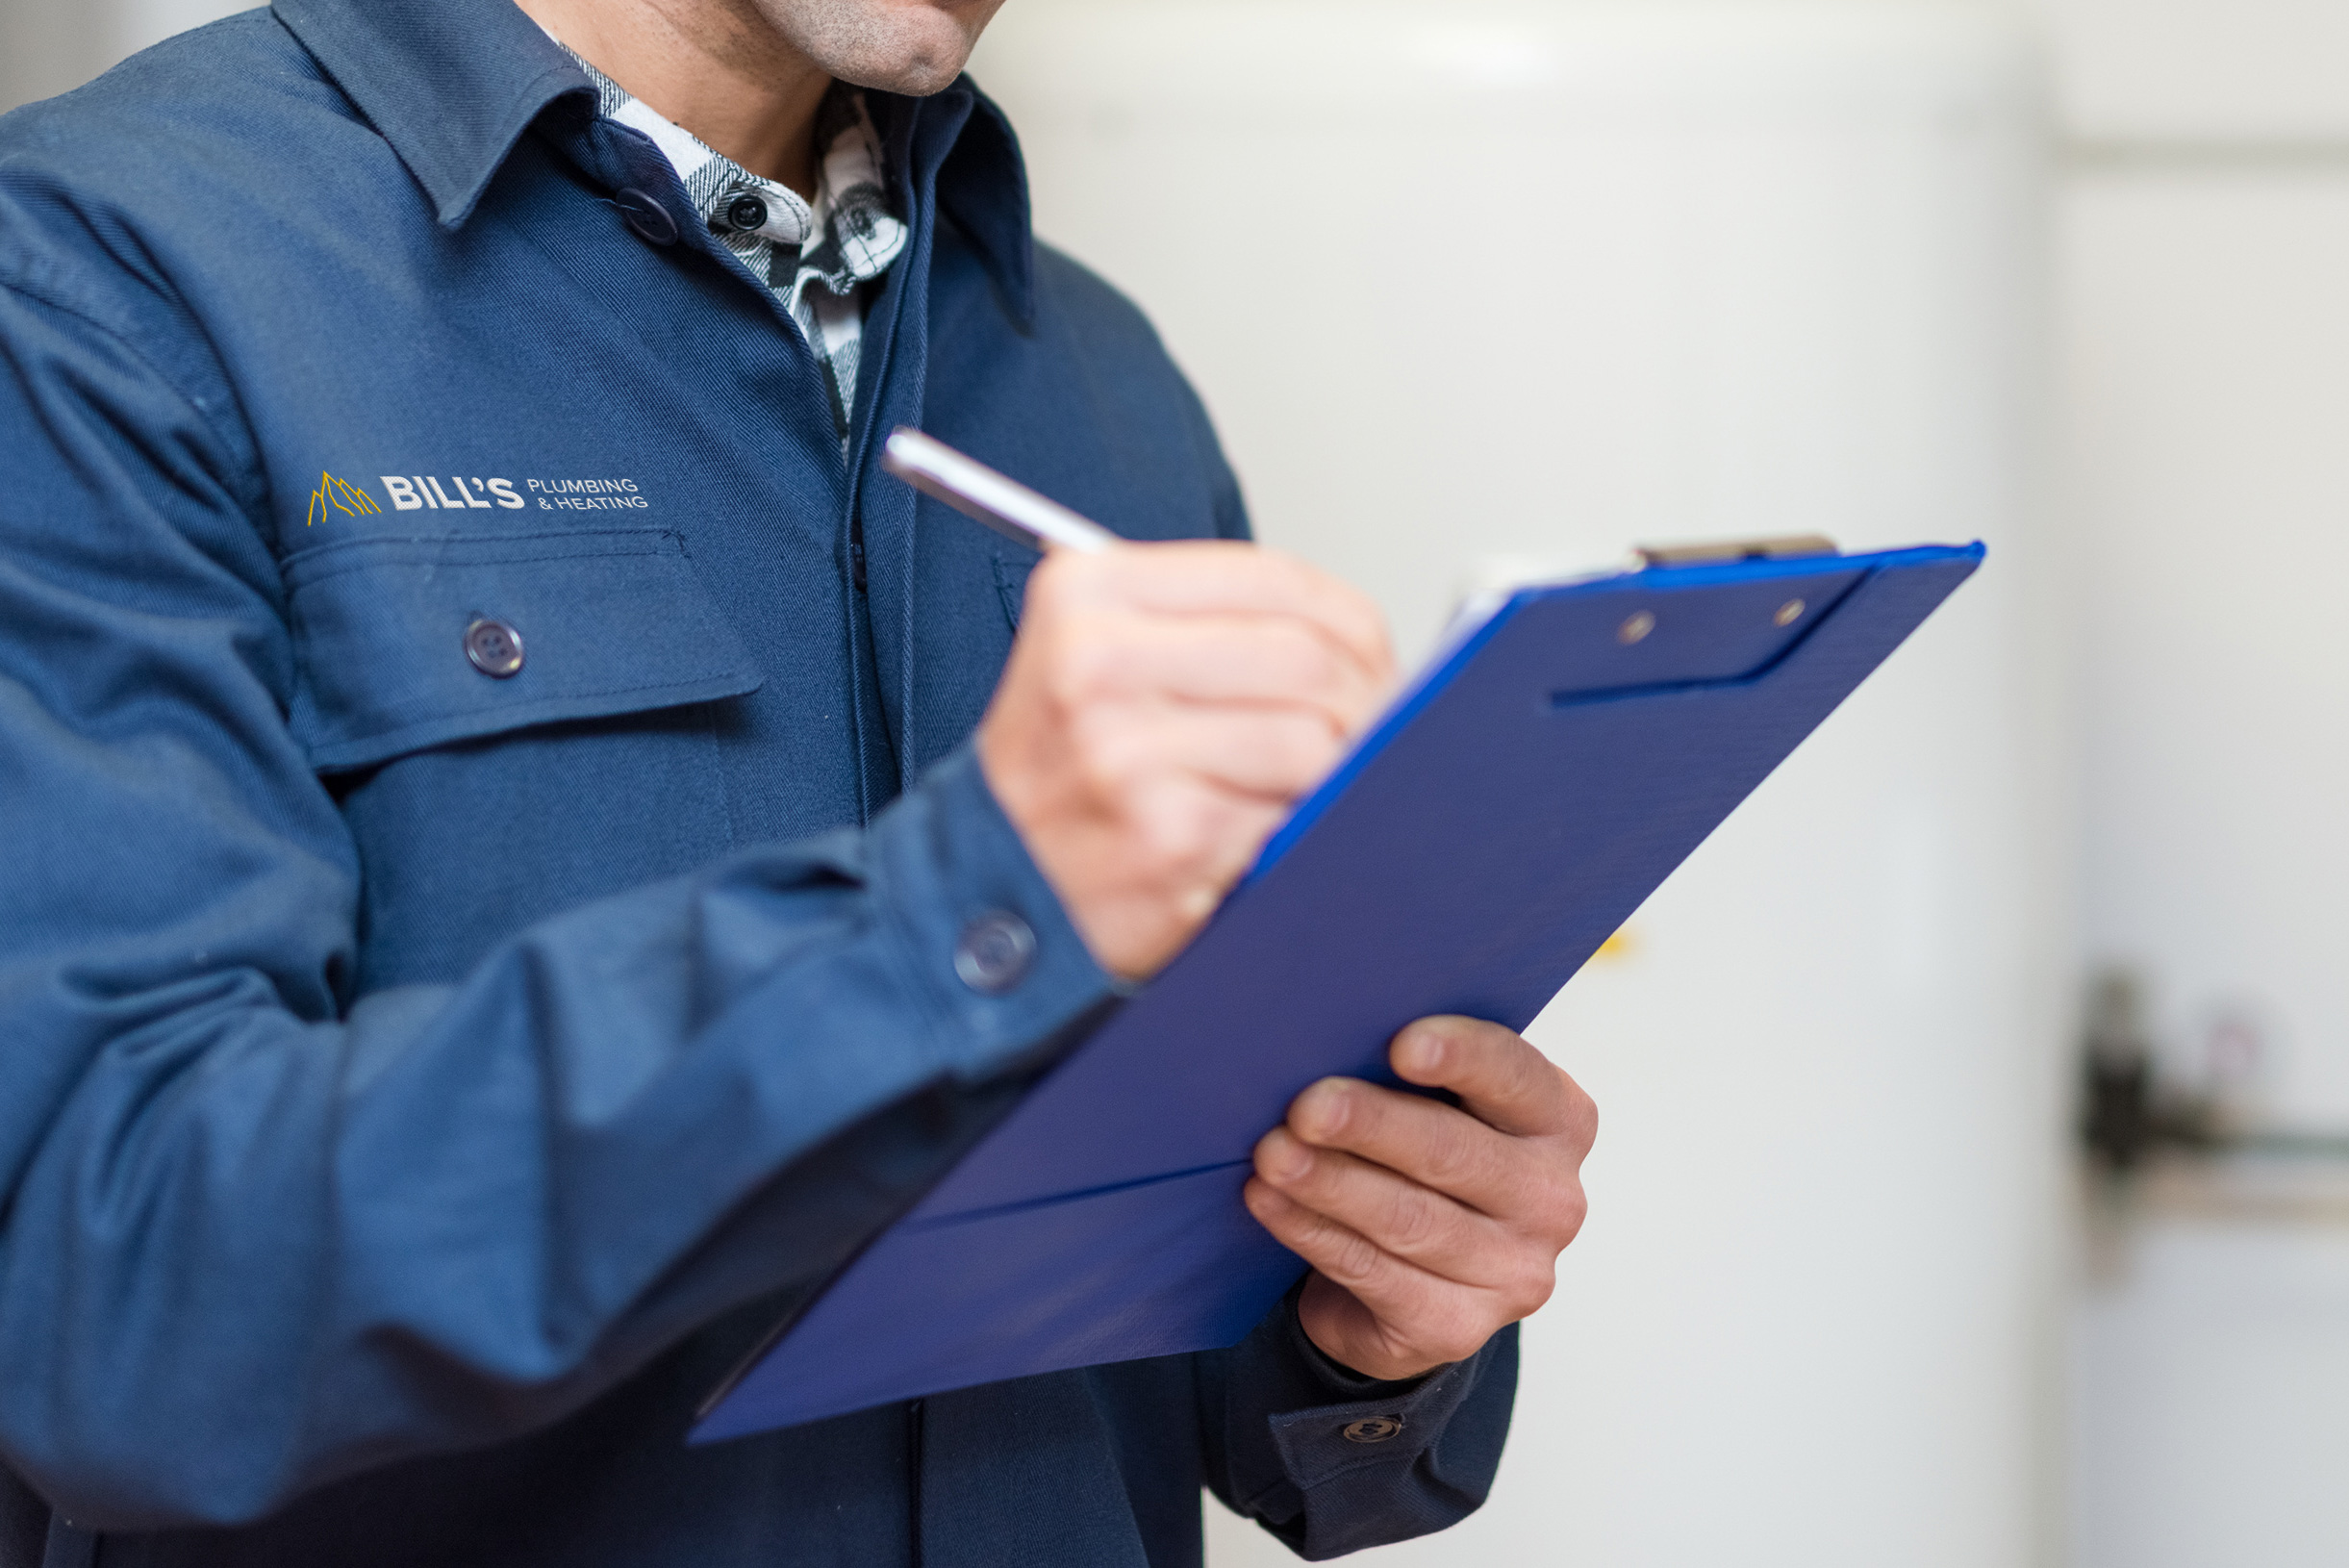 BUILDING PREVENTATIVE MAINTENANCE PROGRAMS - We offer customized preventative maintenance programs to customers in Banff and Canmore. Our regular checks to service and inspect your hot water and heating system will prolong the life of your equipment and ensure major repairs are prevented.